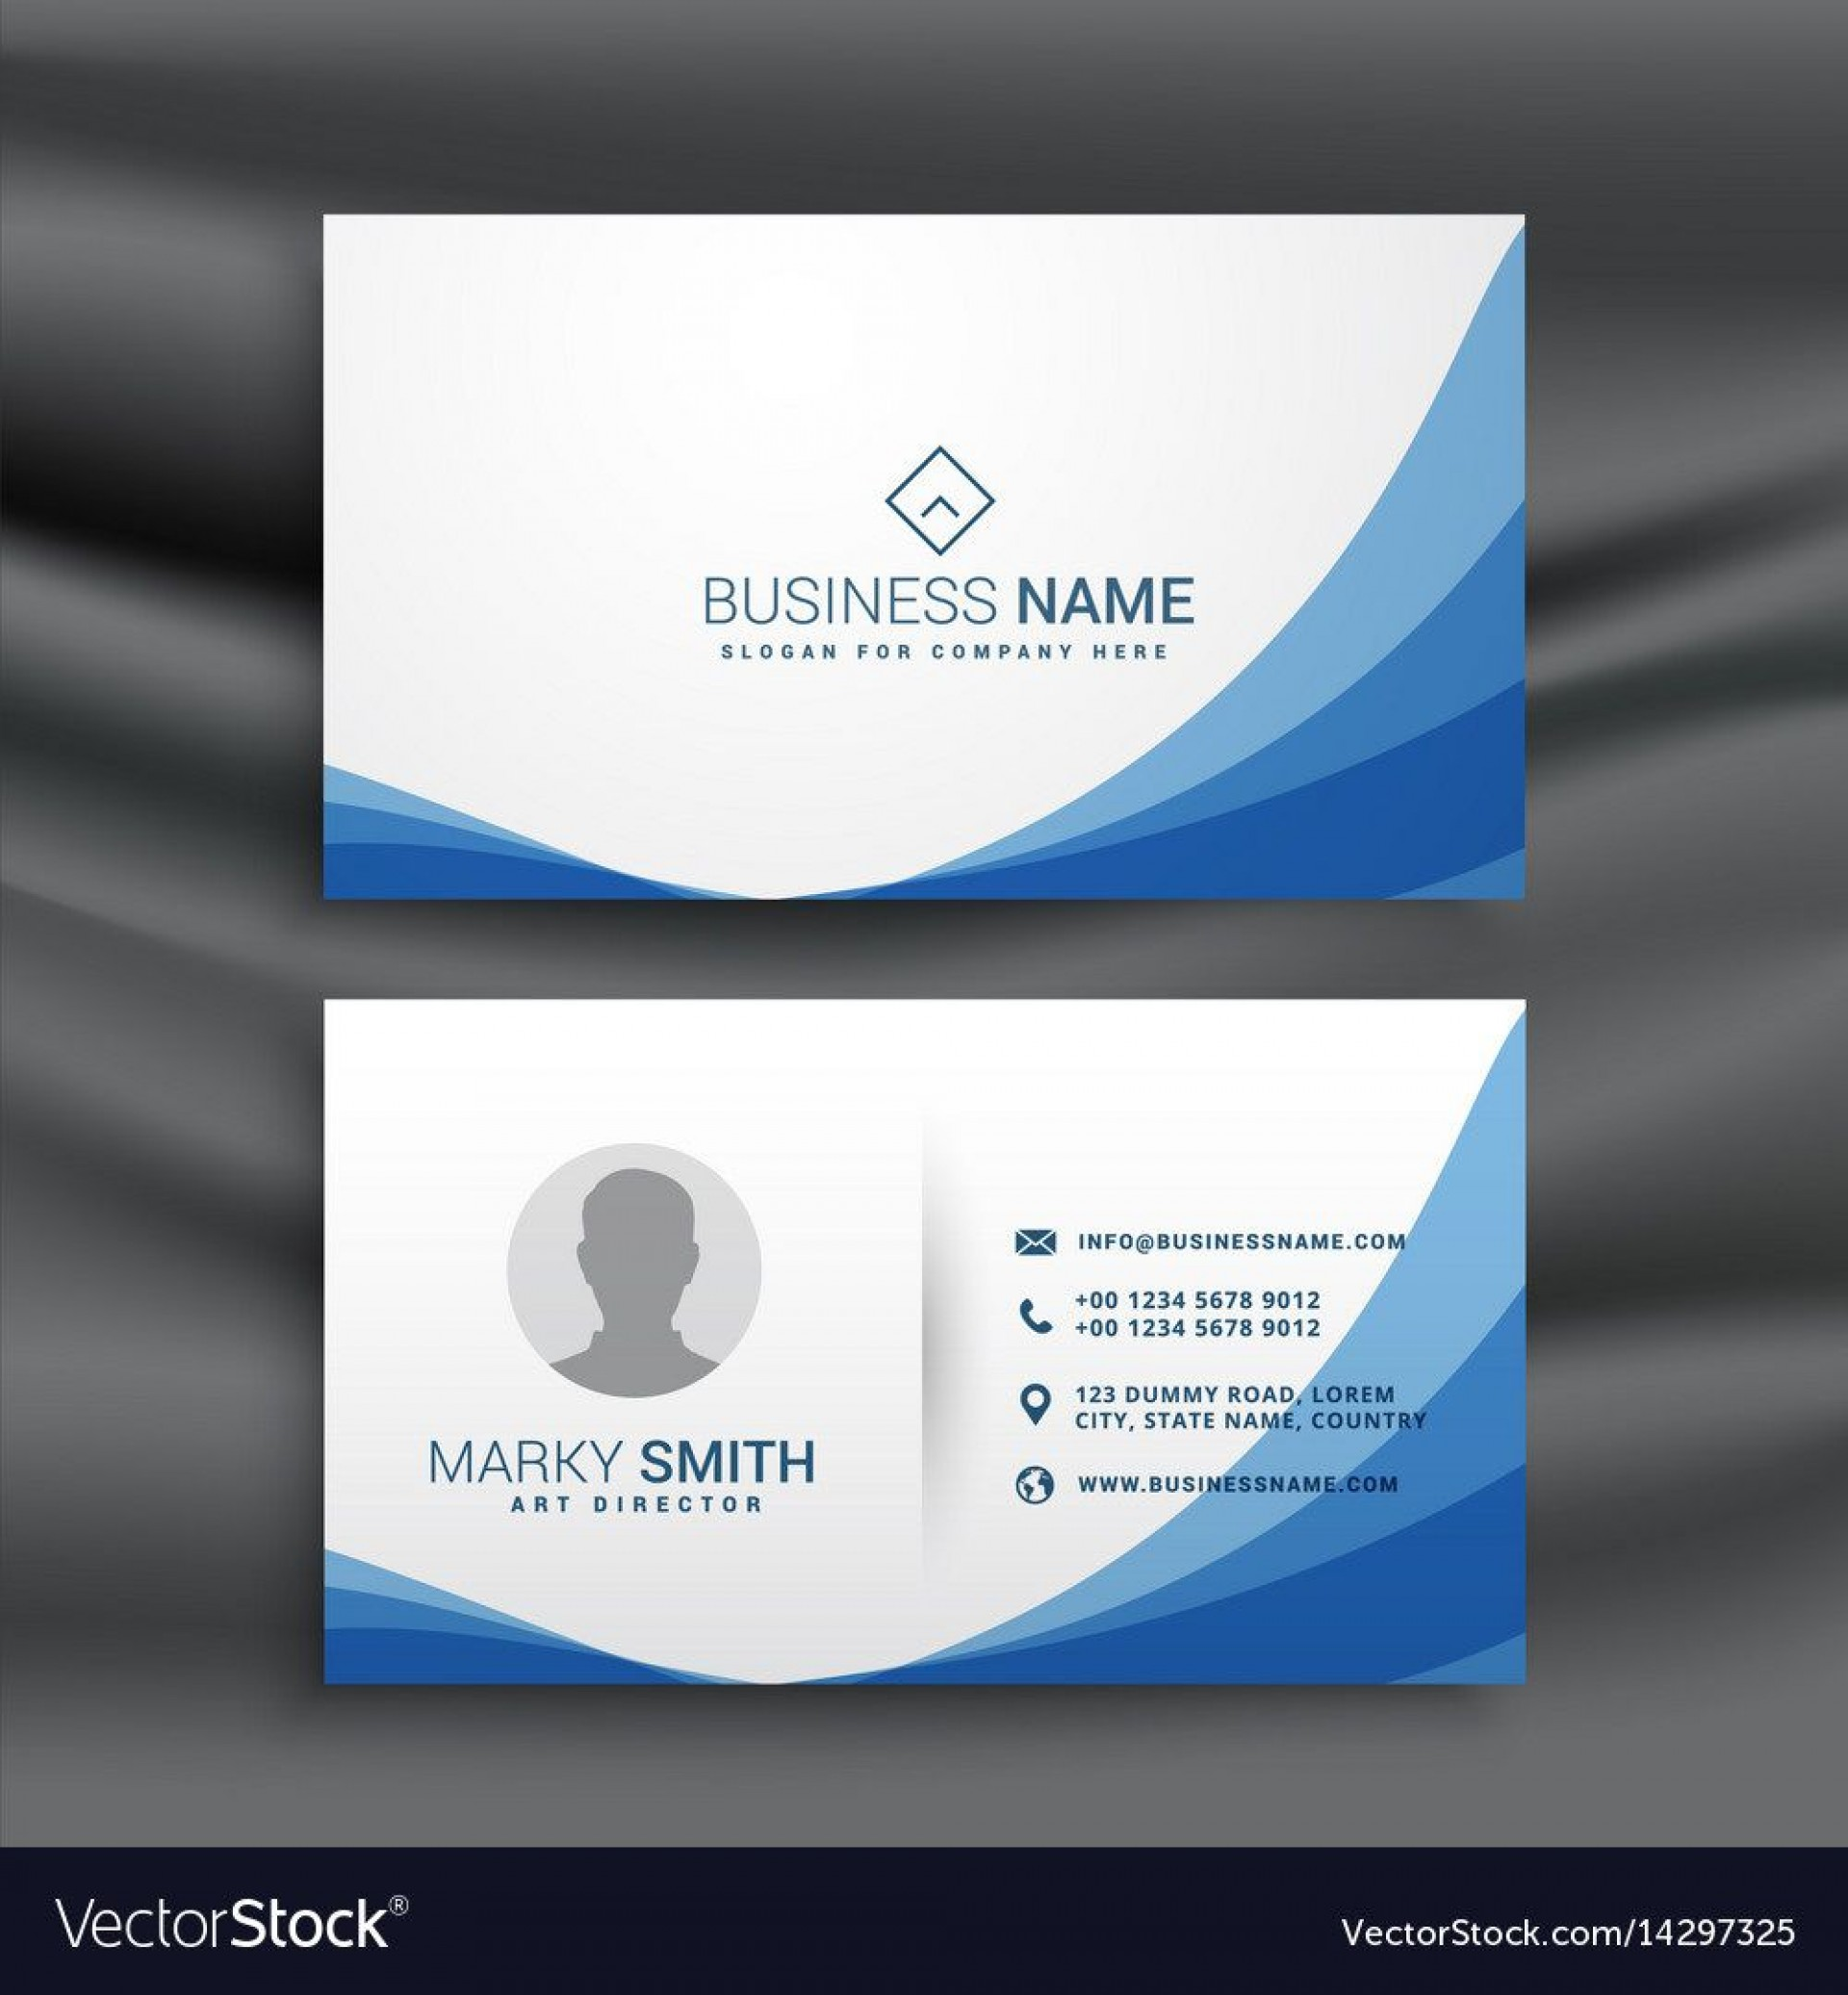 002 Incredible Simple Busines Card Design Template Free High Resolution  Minimalist Psd Visiting File Download1920